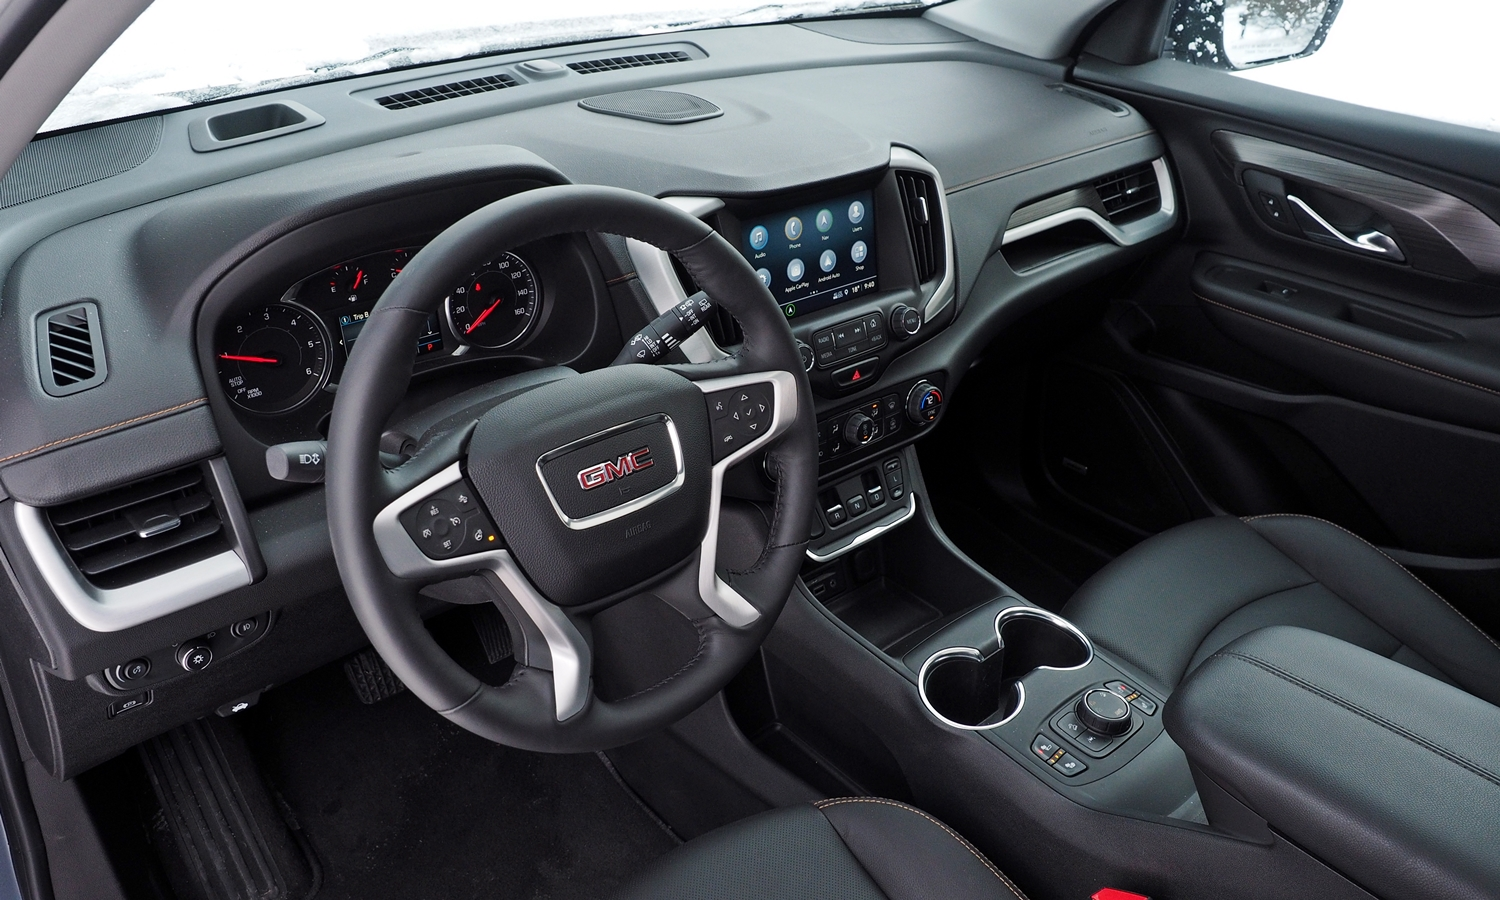 GMC Terrain Photos: 2018 GMC Terrain interior